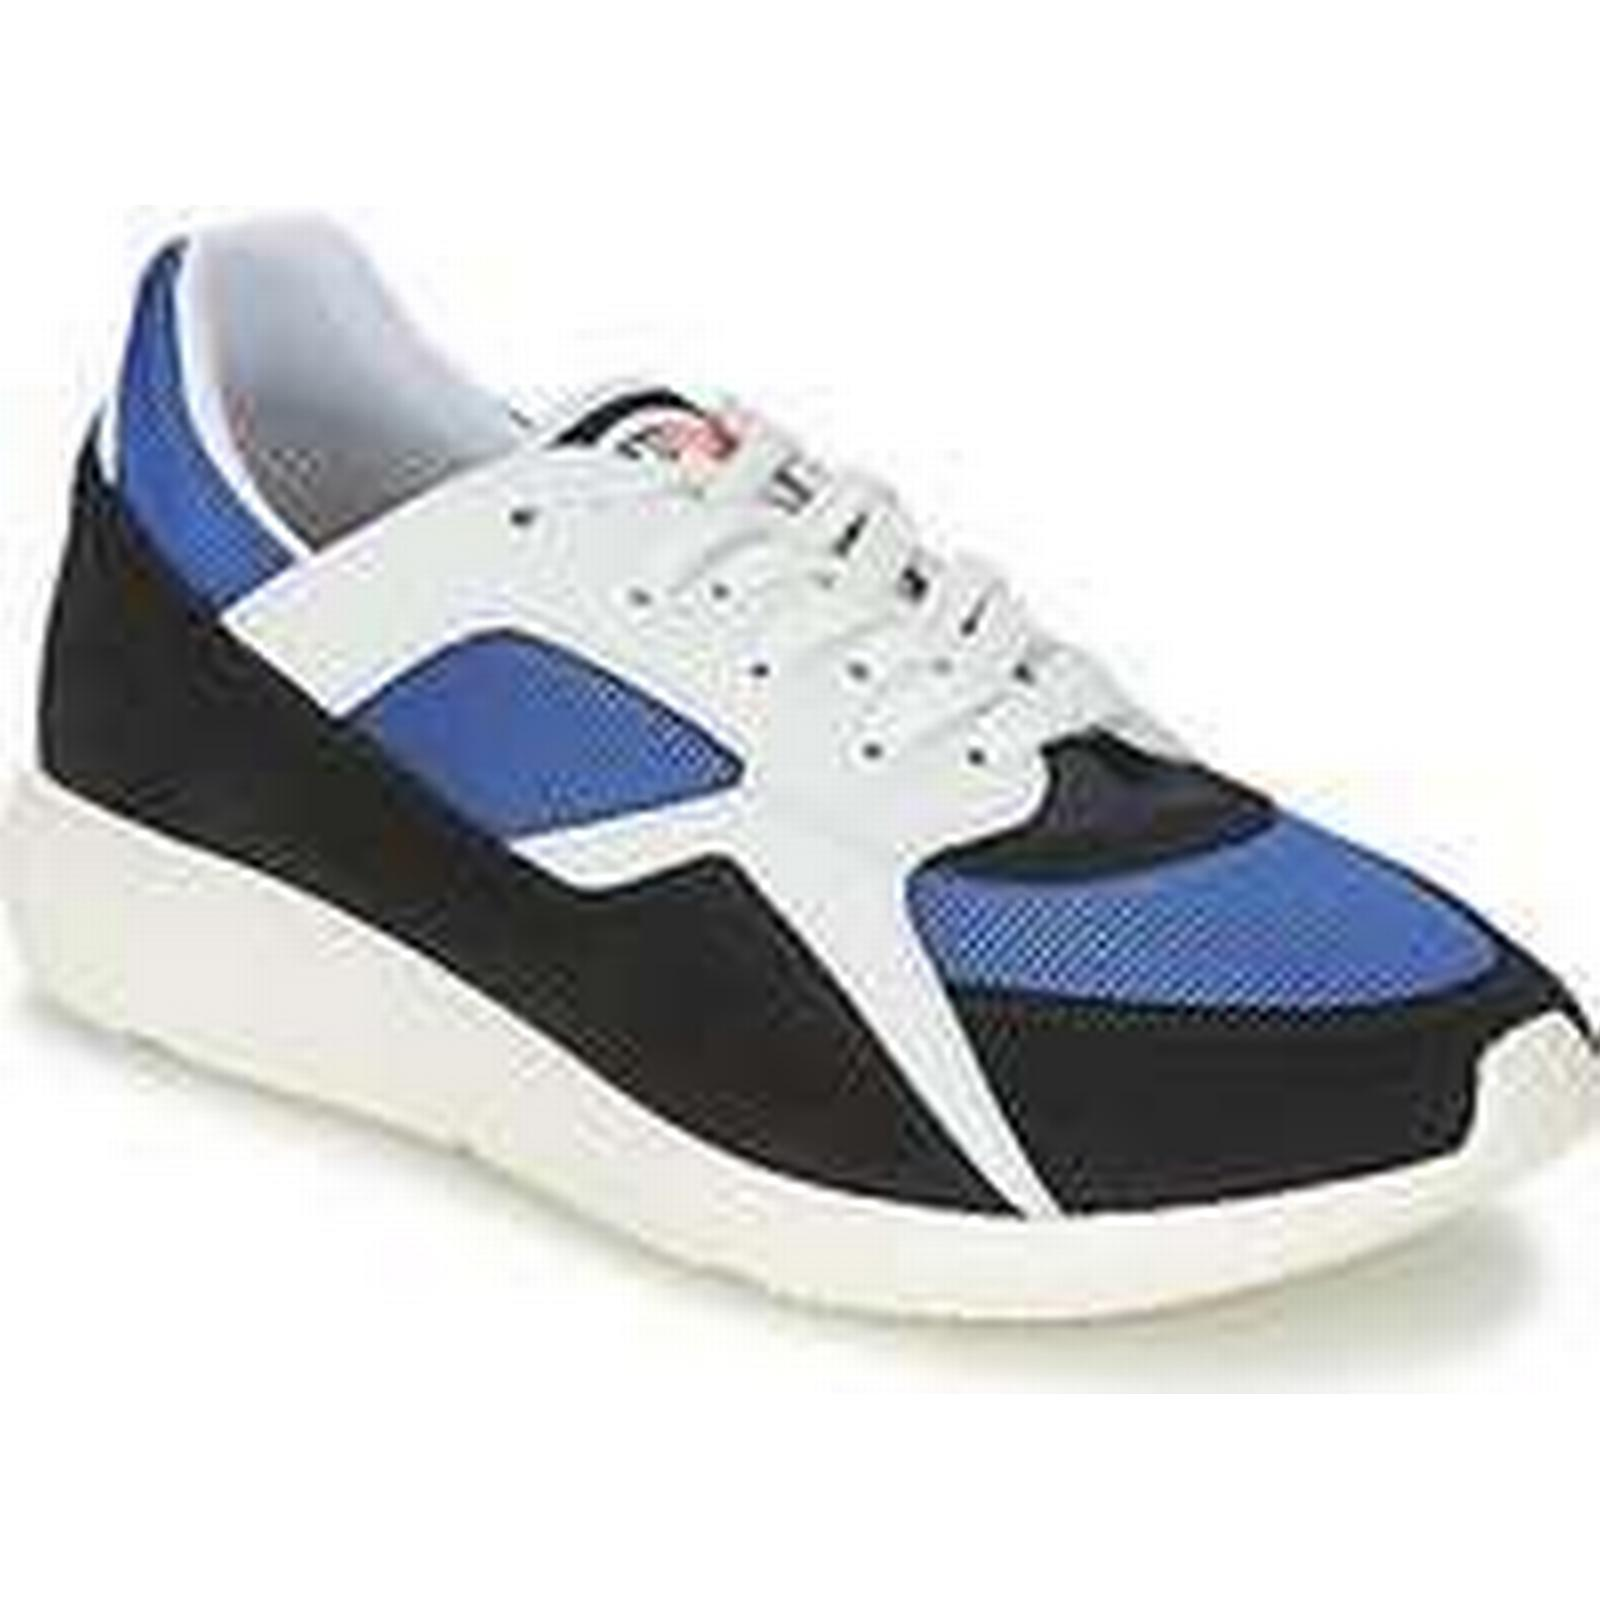 Spartoo.co.uk Bikkembergs Shoes SPEED 406 men's Shoes Bikkembergs (Trainers) in Multicolour 917a57